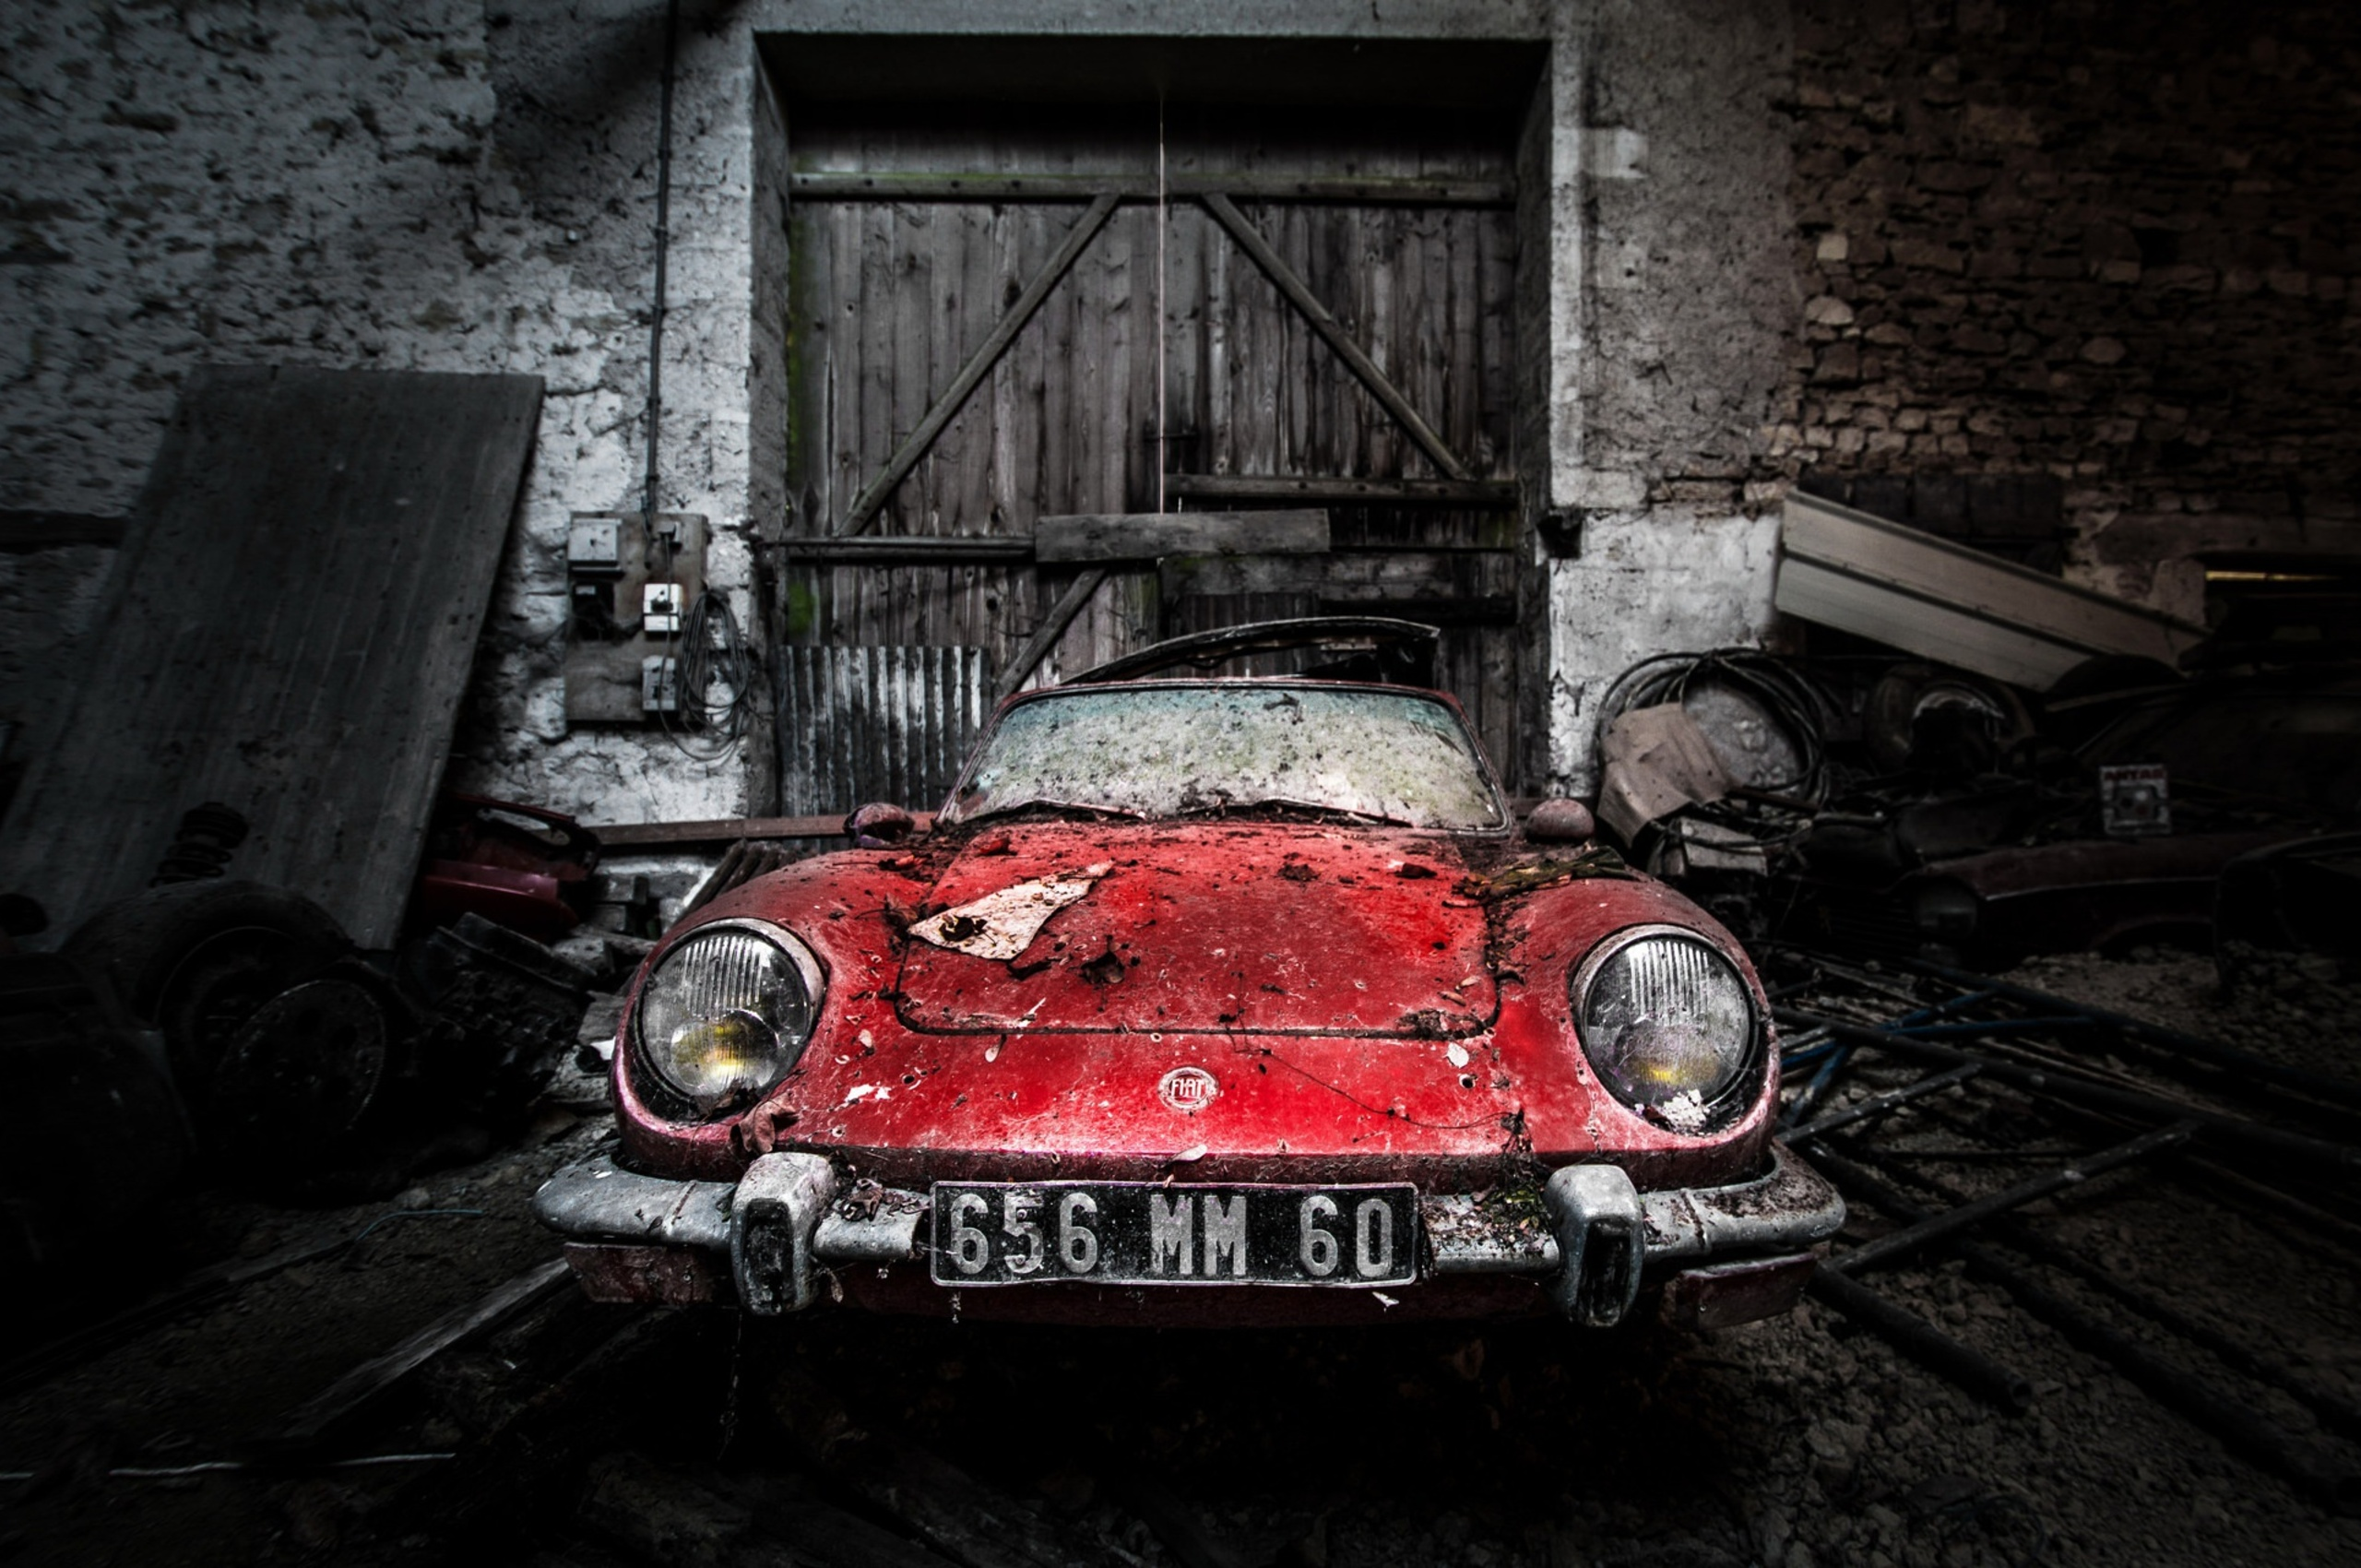 2560x1700 Abandoned Old Rusty Car Chromebook Pixel HD 4k Wallpapers ...